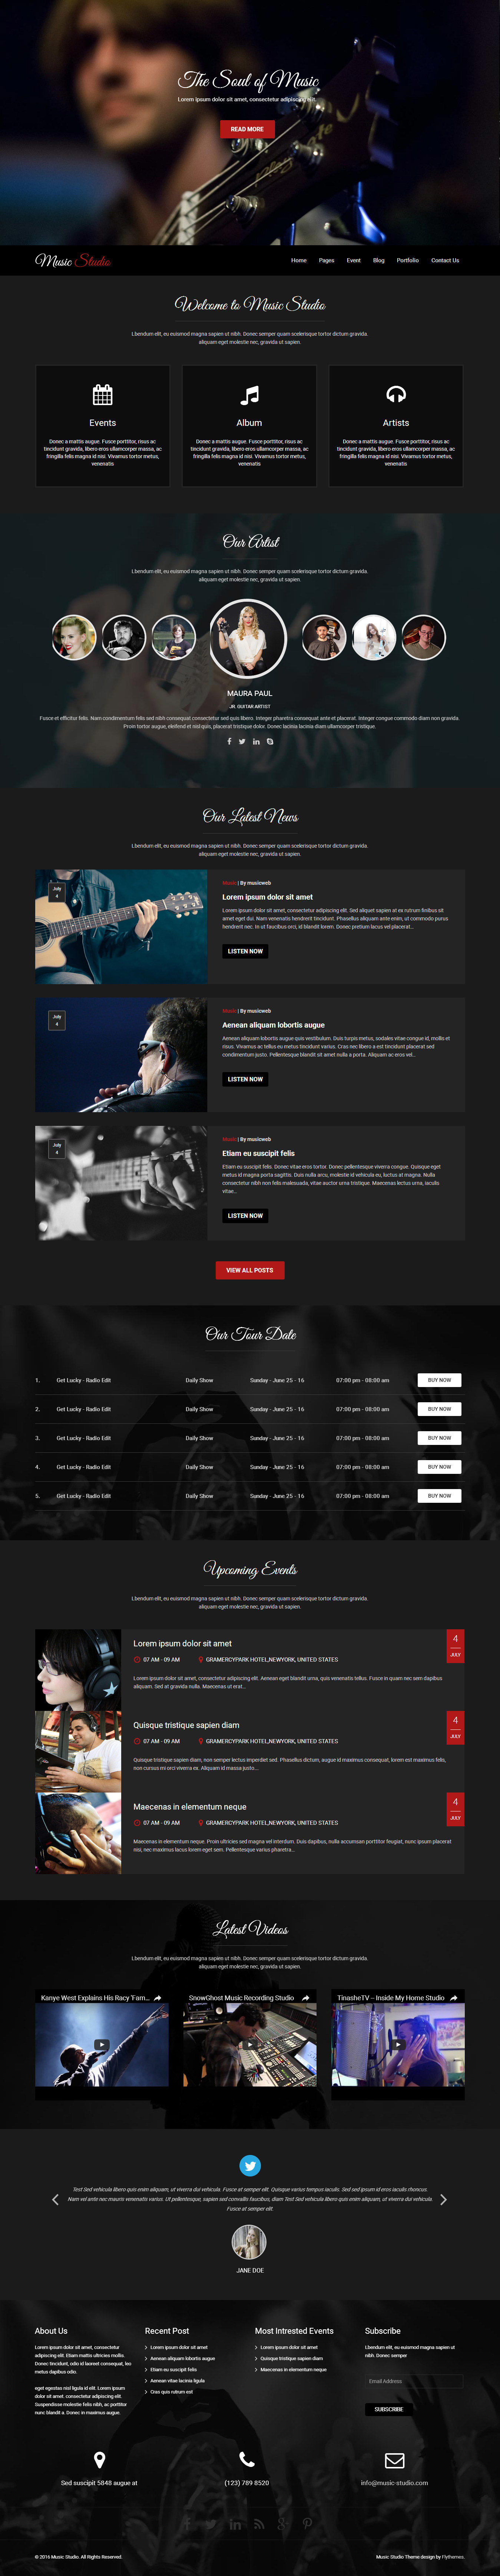 music-studio-wordpress-theme